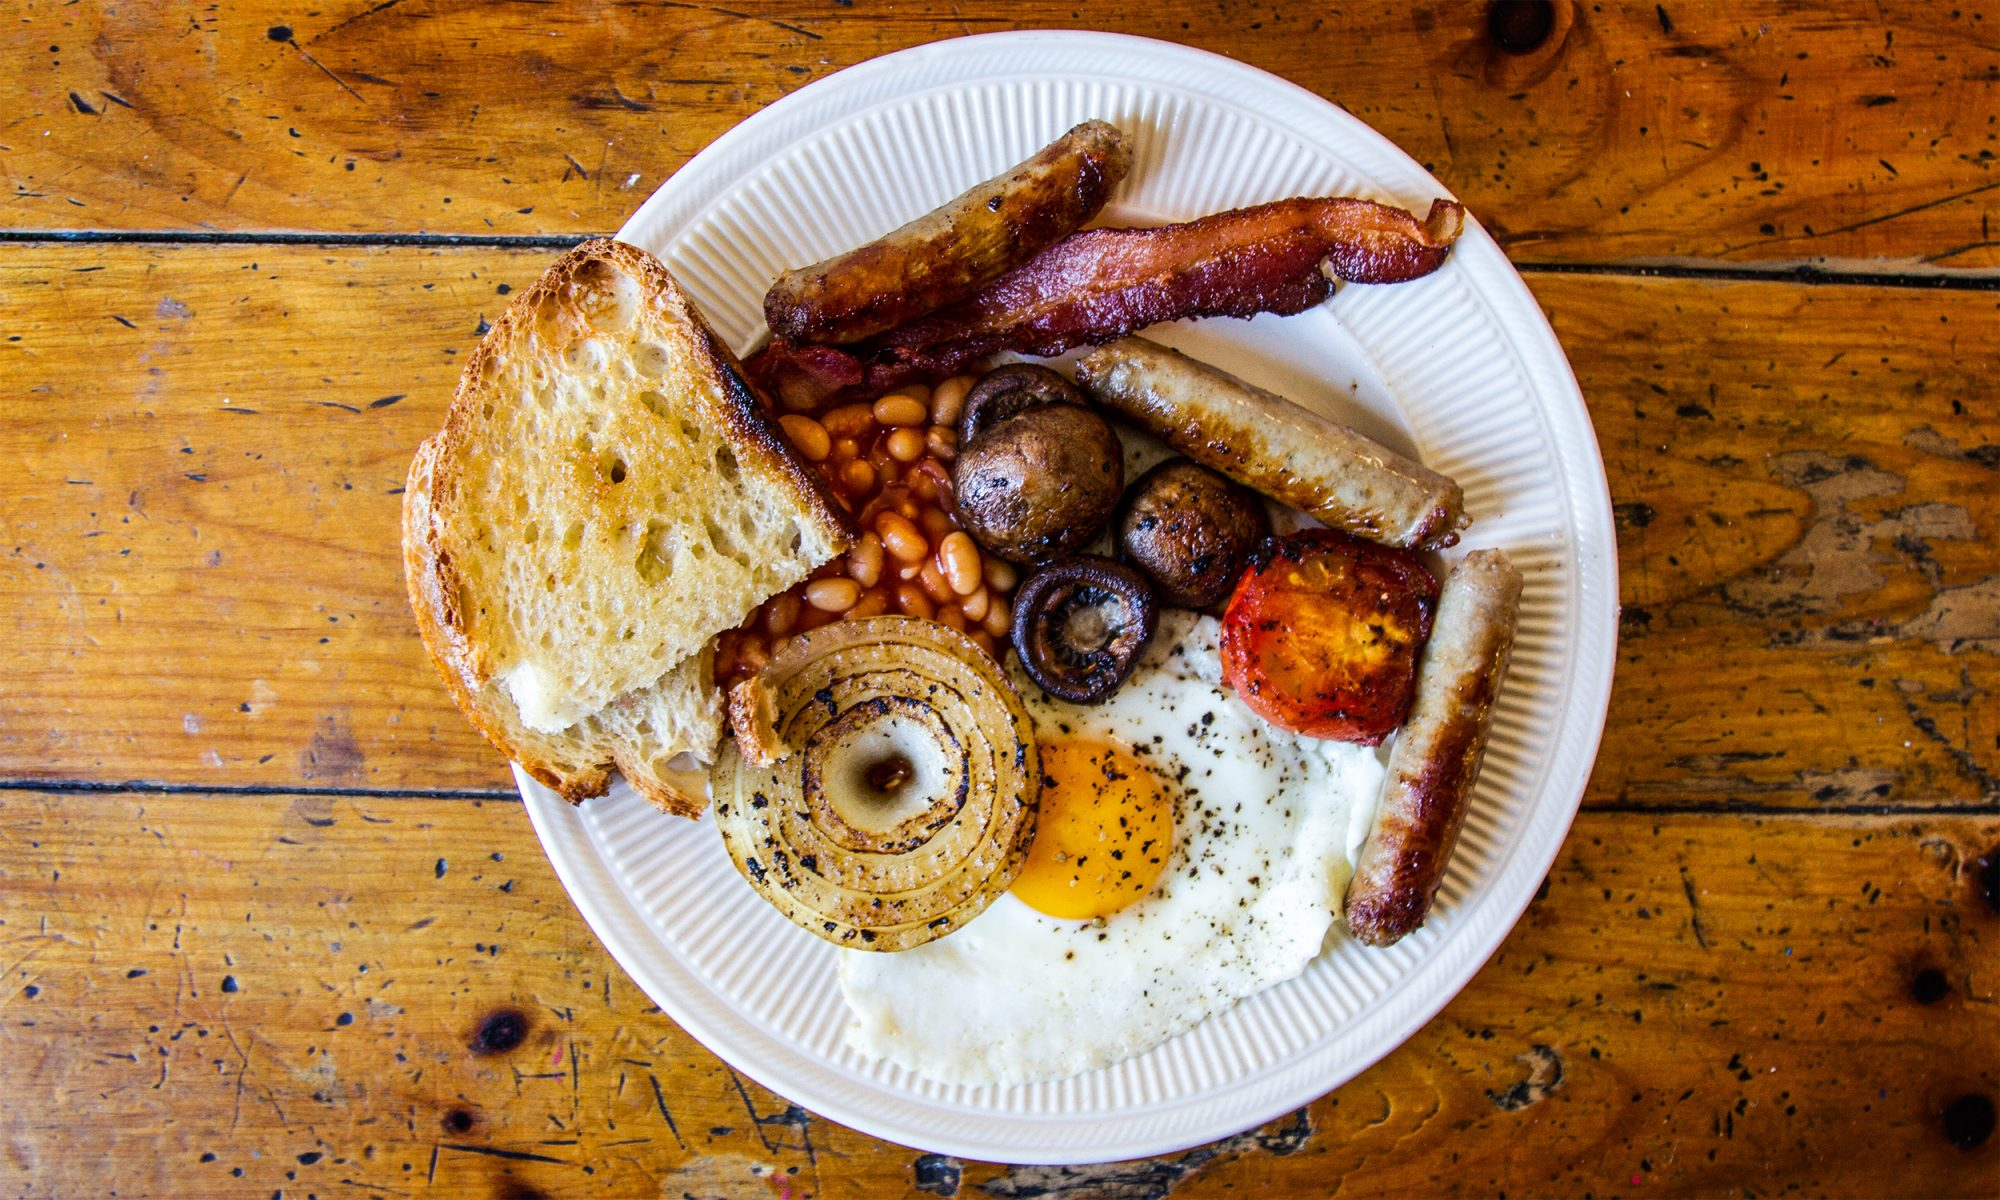 EC: The Ultimate Soccer Breakfast for Champions